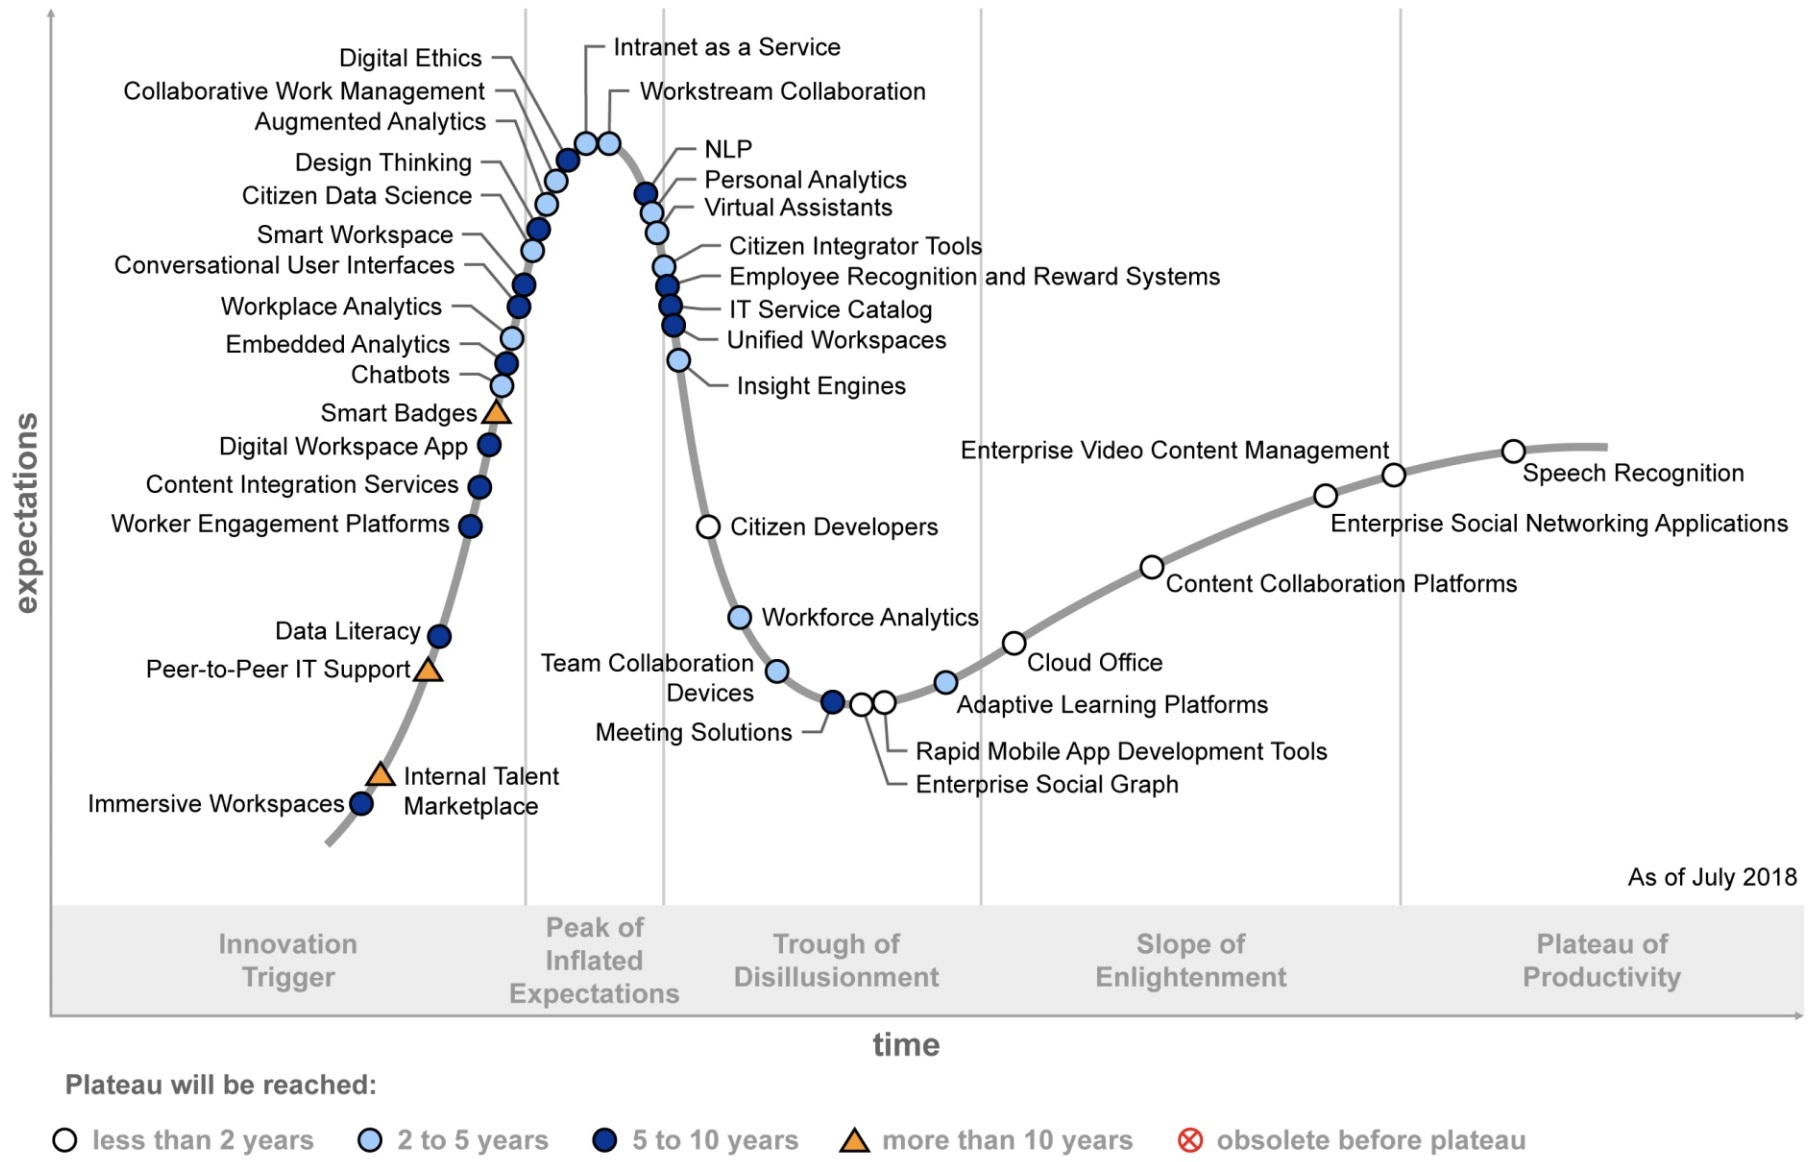 Hype Cycle for the Digital Workplace, 2018